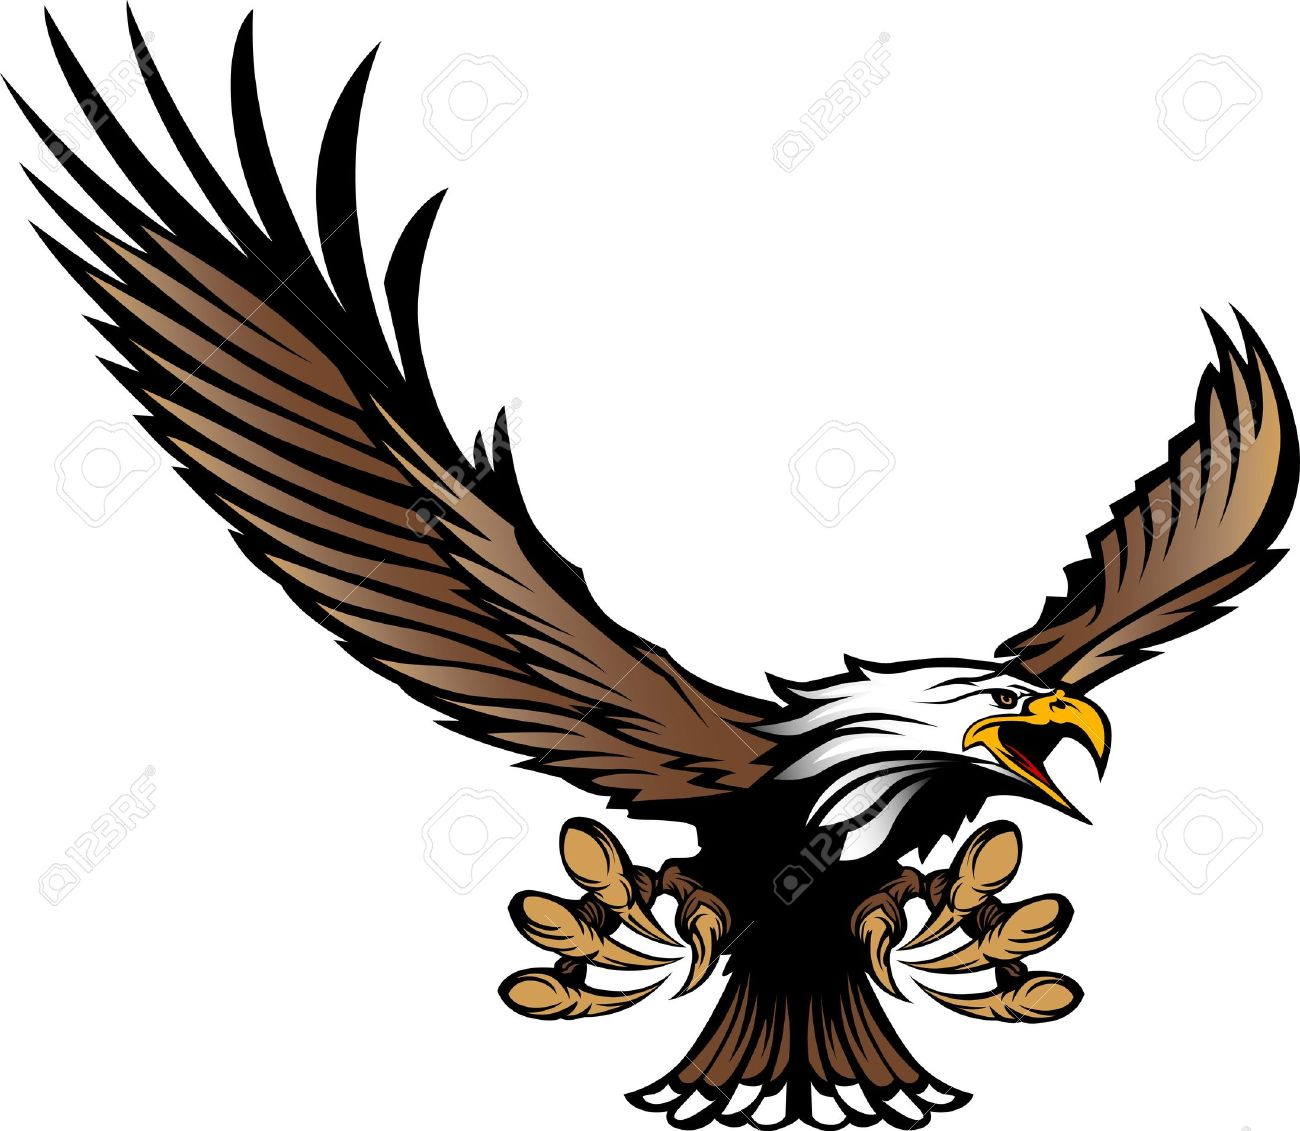 1300x1131 Bird Of Prey Clipart Eagle Talon